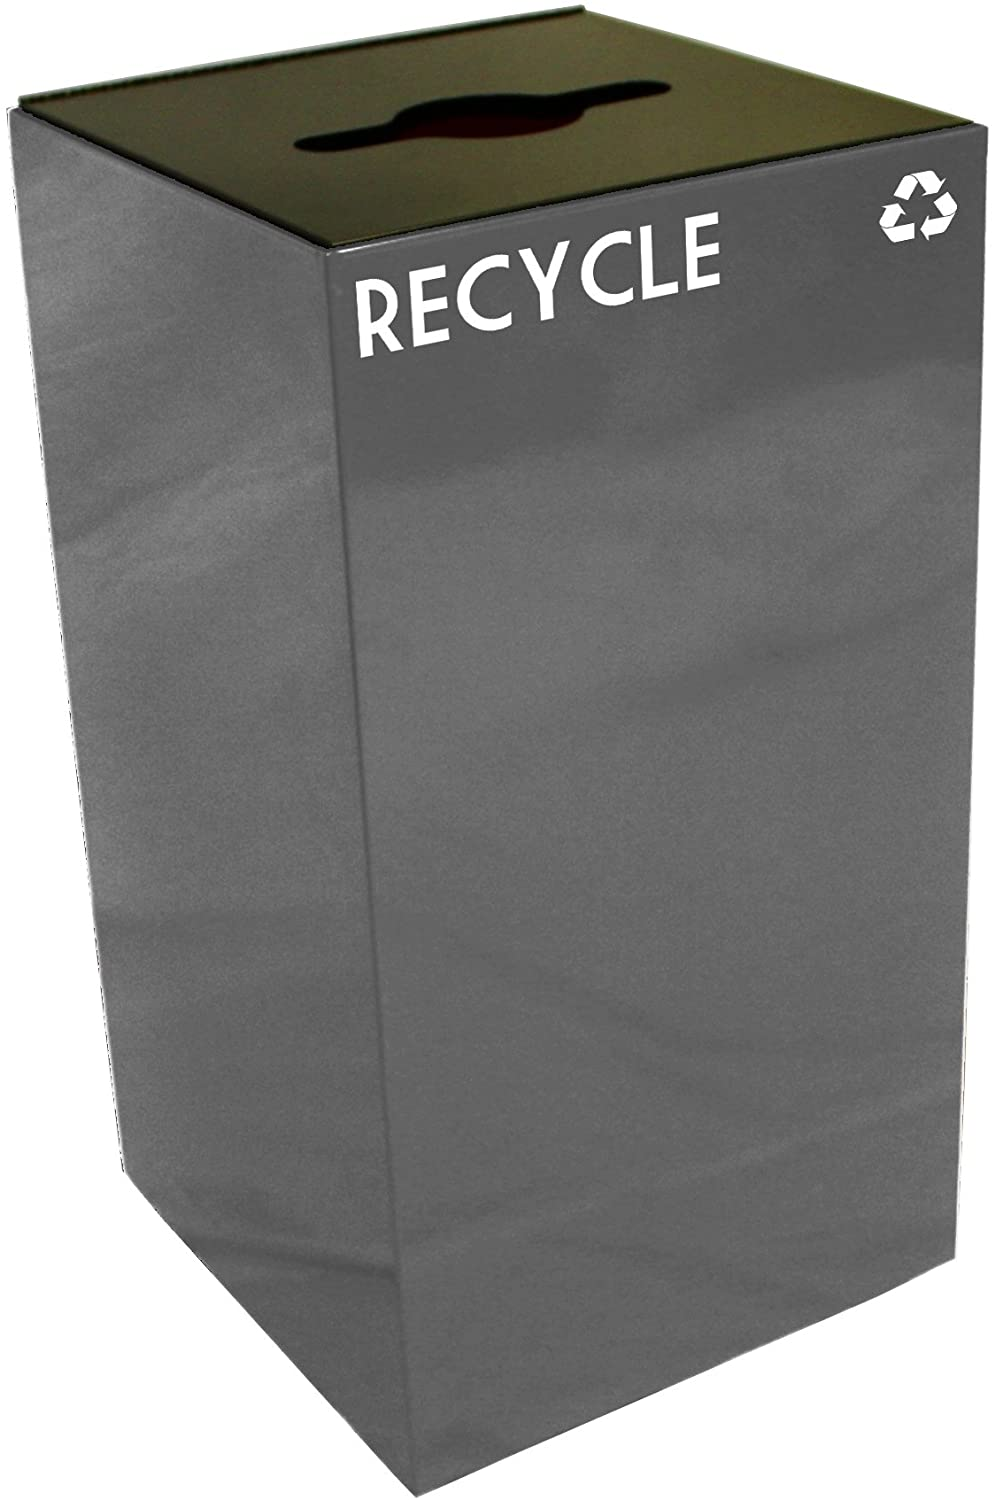 Witt Industries 28GC04-SL GeoCube Recycling Receptacle with Combination Slot/Round Opening, Steel, 28 gal, Slate